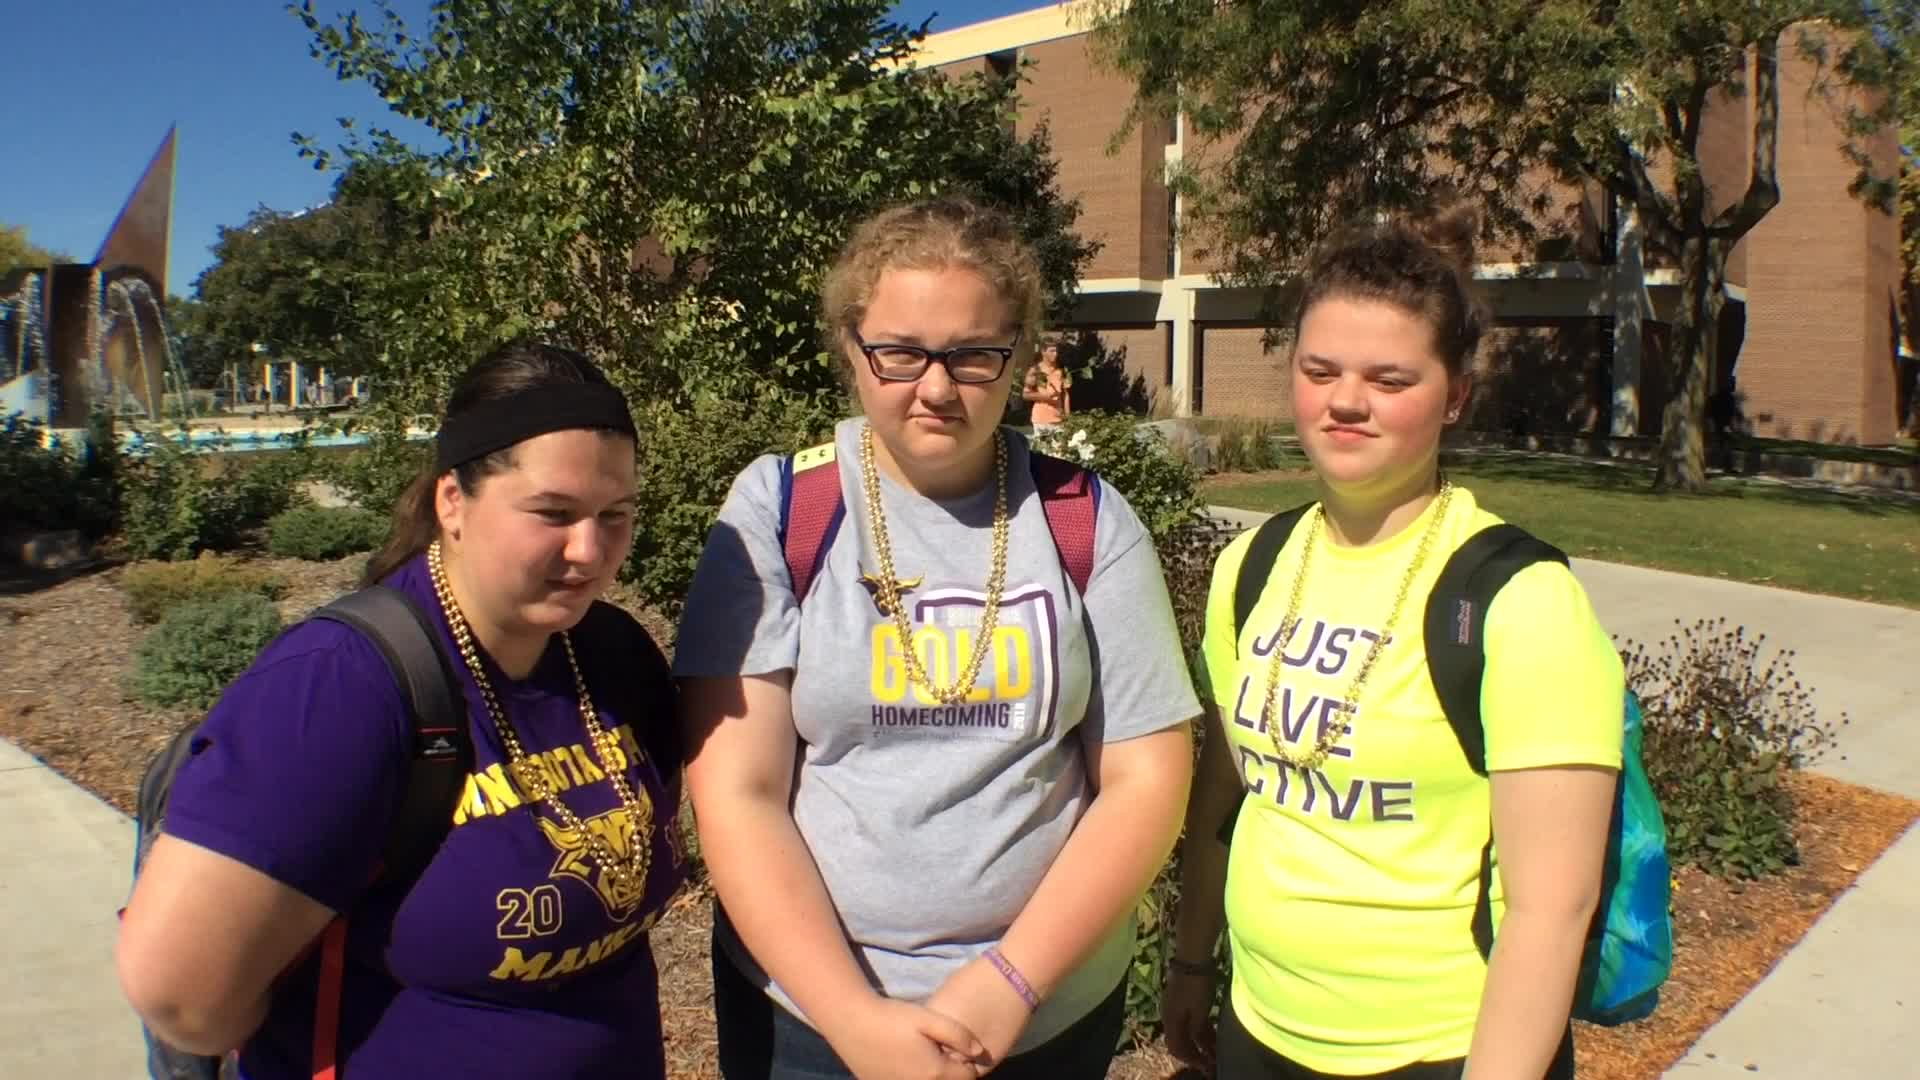 Emma Kearney, Allyson Vorwerk, and Rachel Gruber, Mankato, MN - Homecoming 2016 at Minnesota State University, Mankato